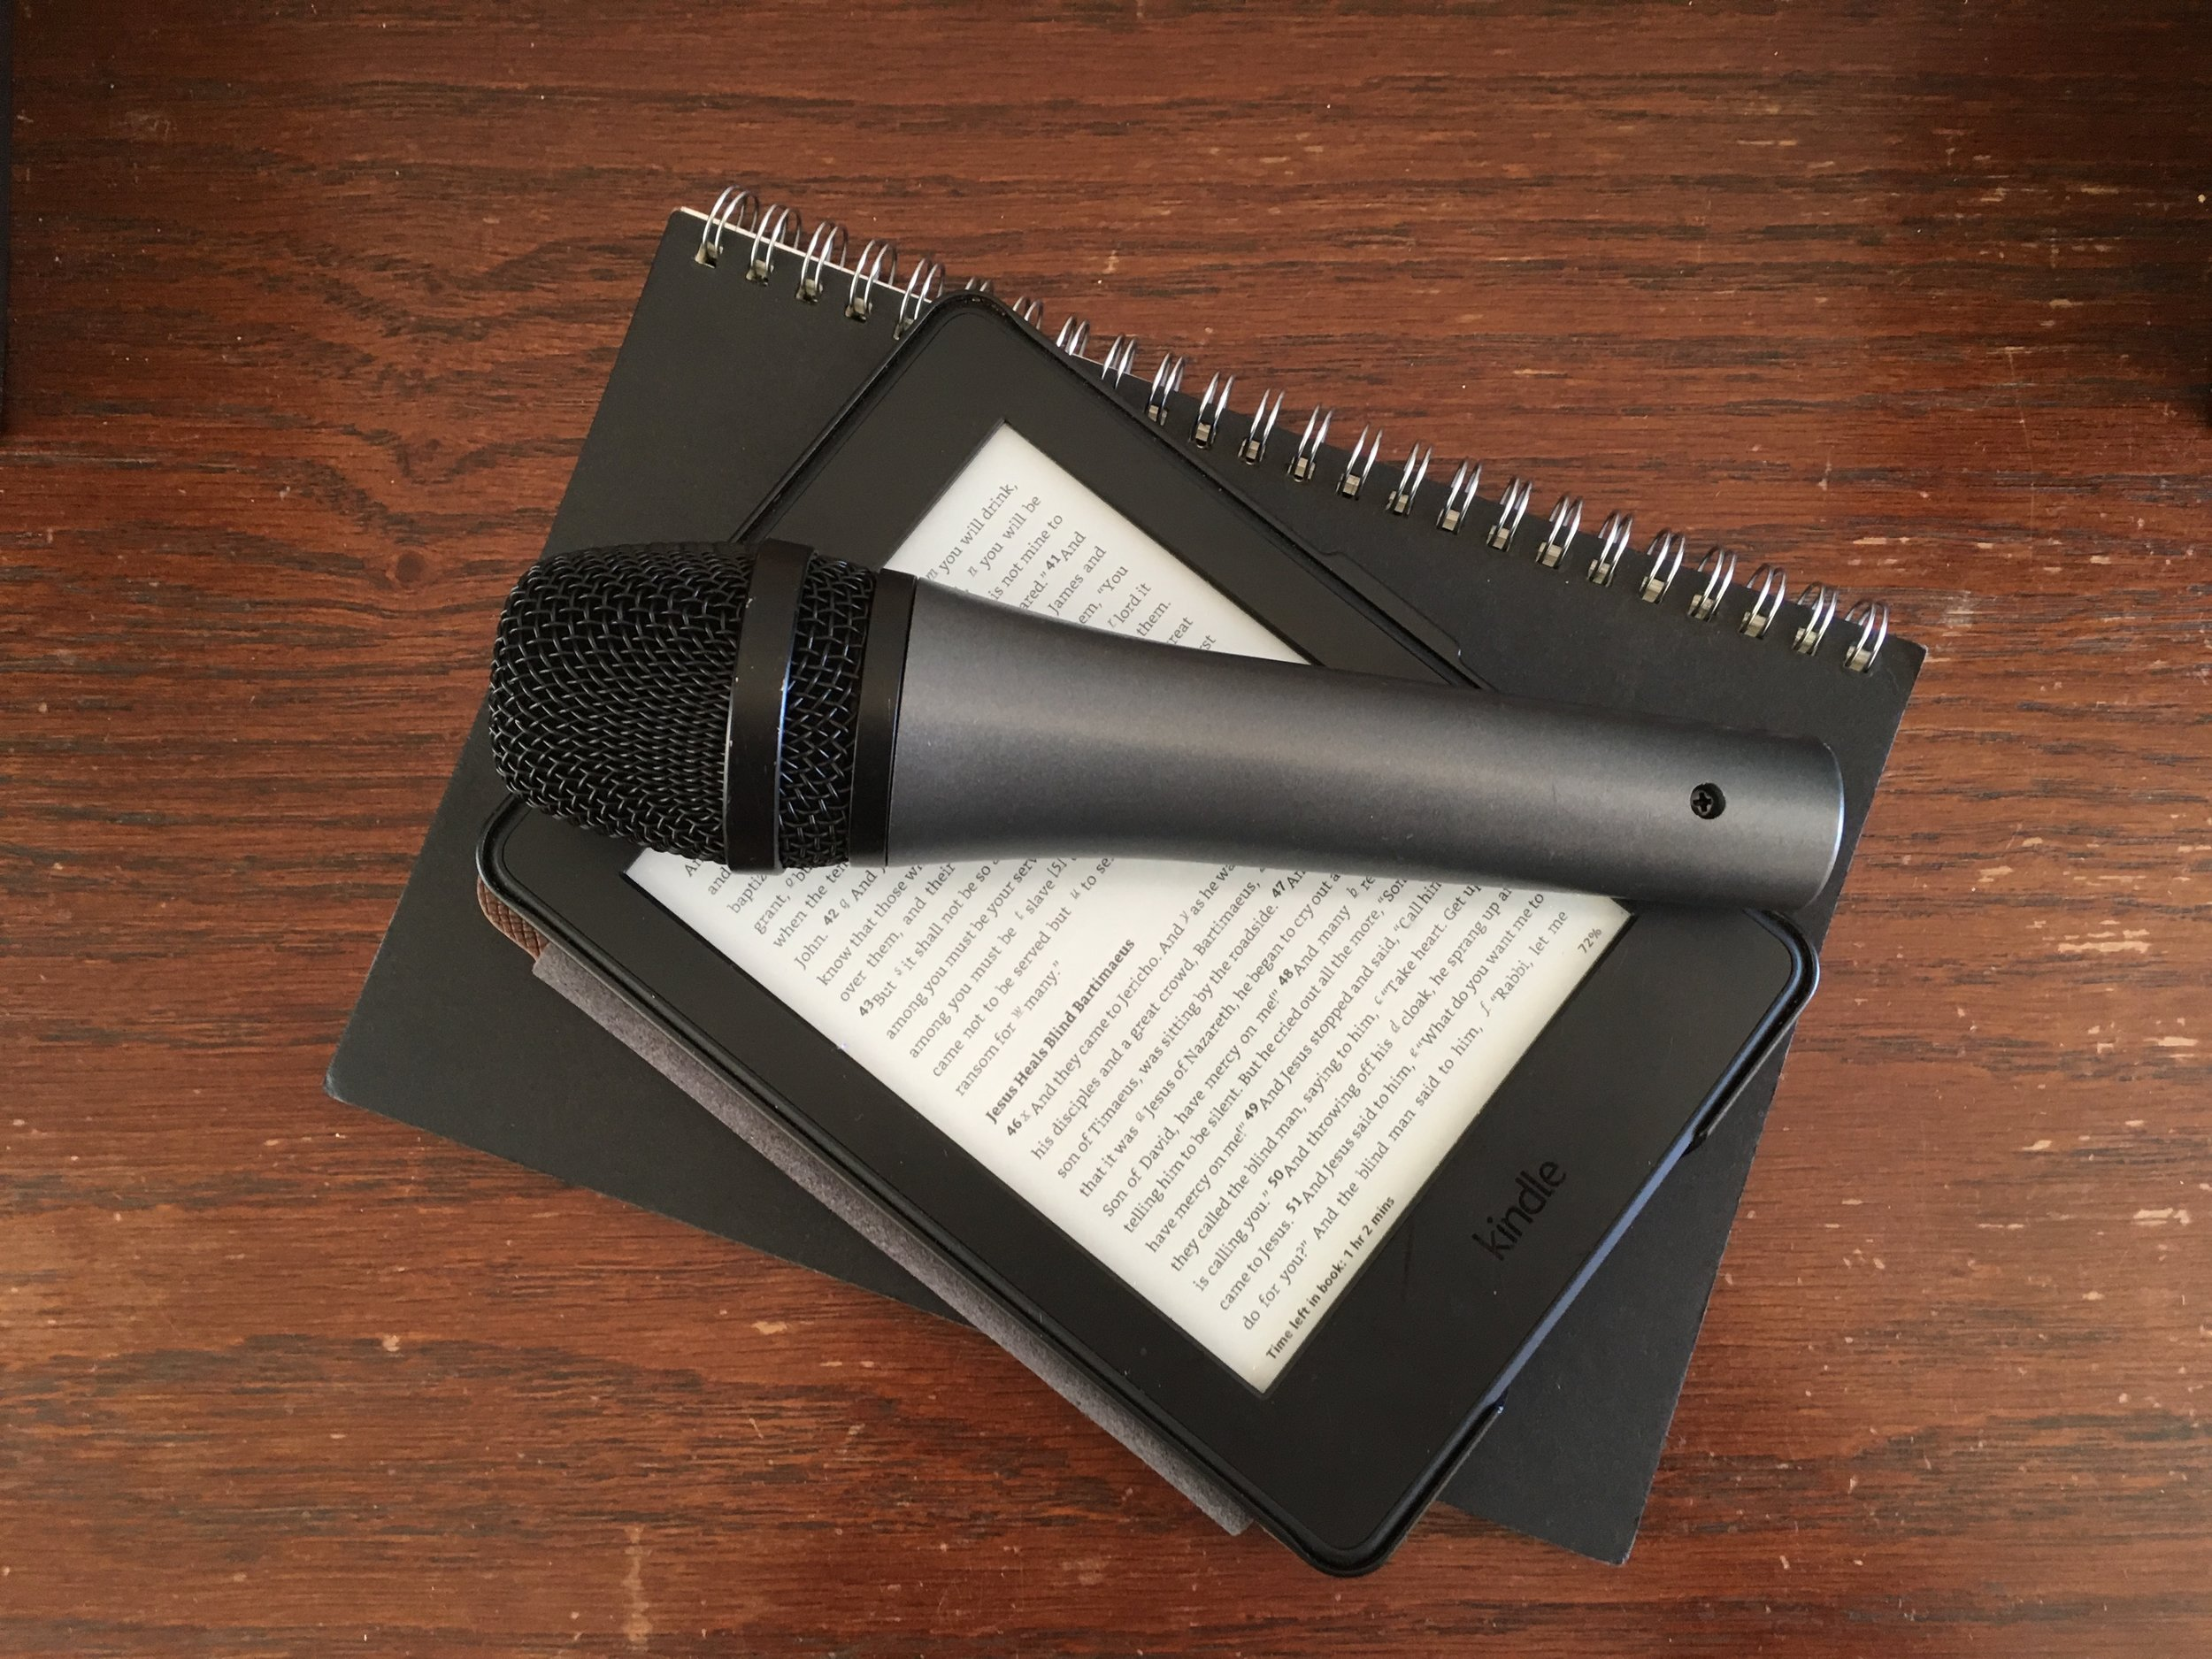 microphone on notebook